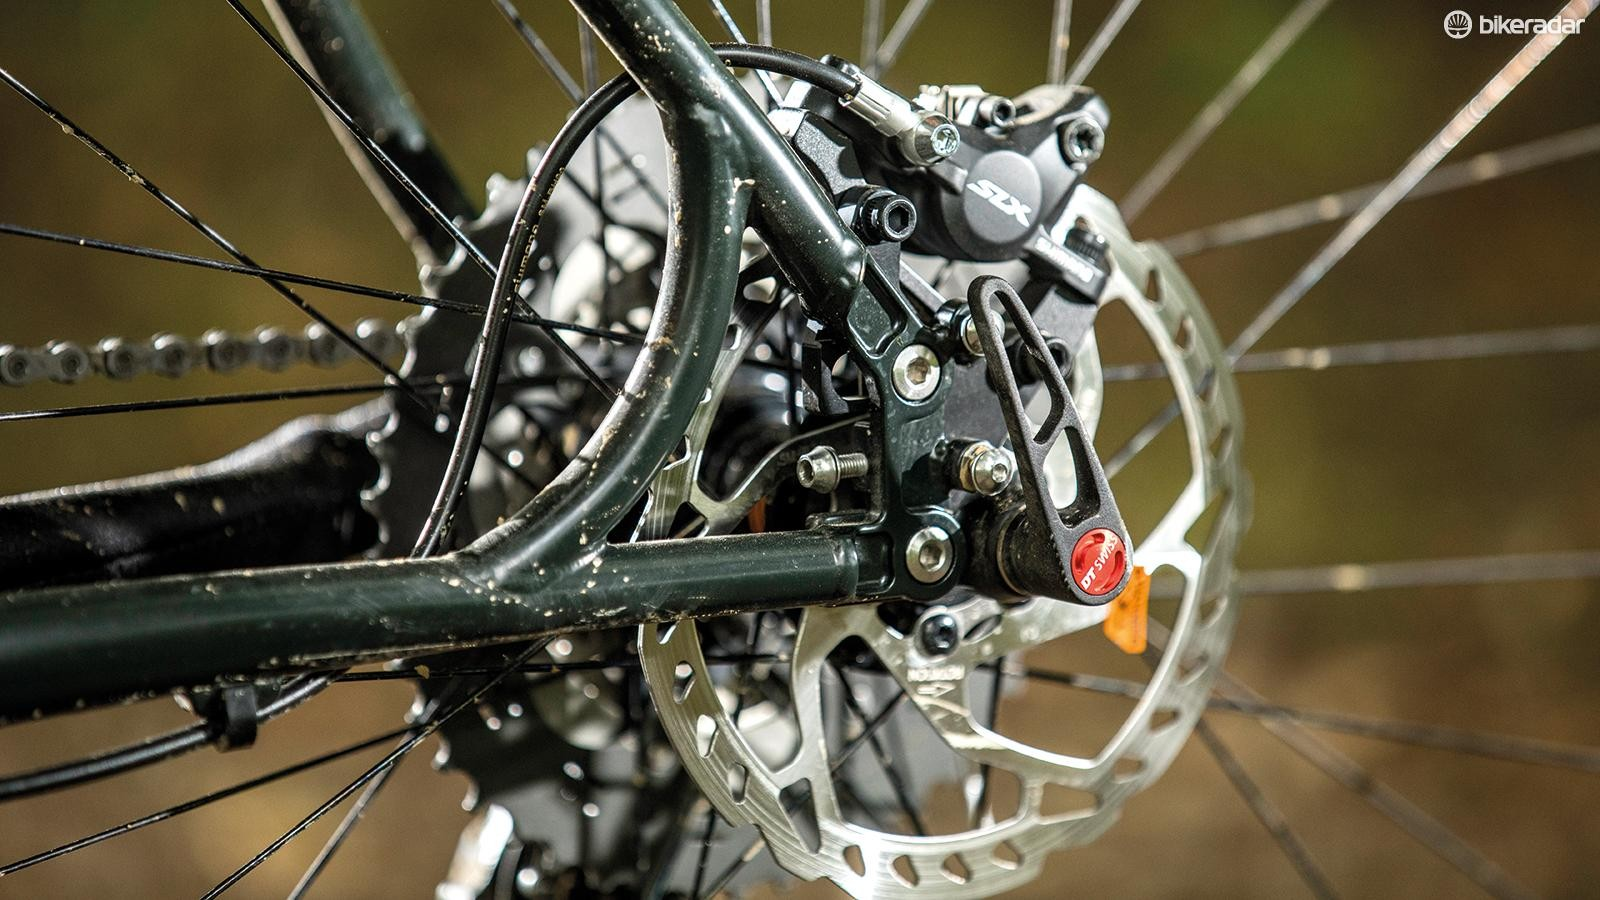 Braced stays carry Pace's 'Slideout' dropout system, in 148mm Boost width